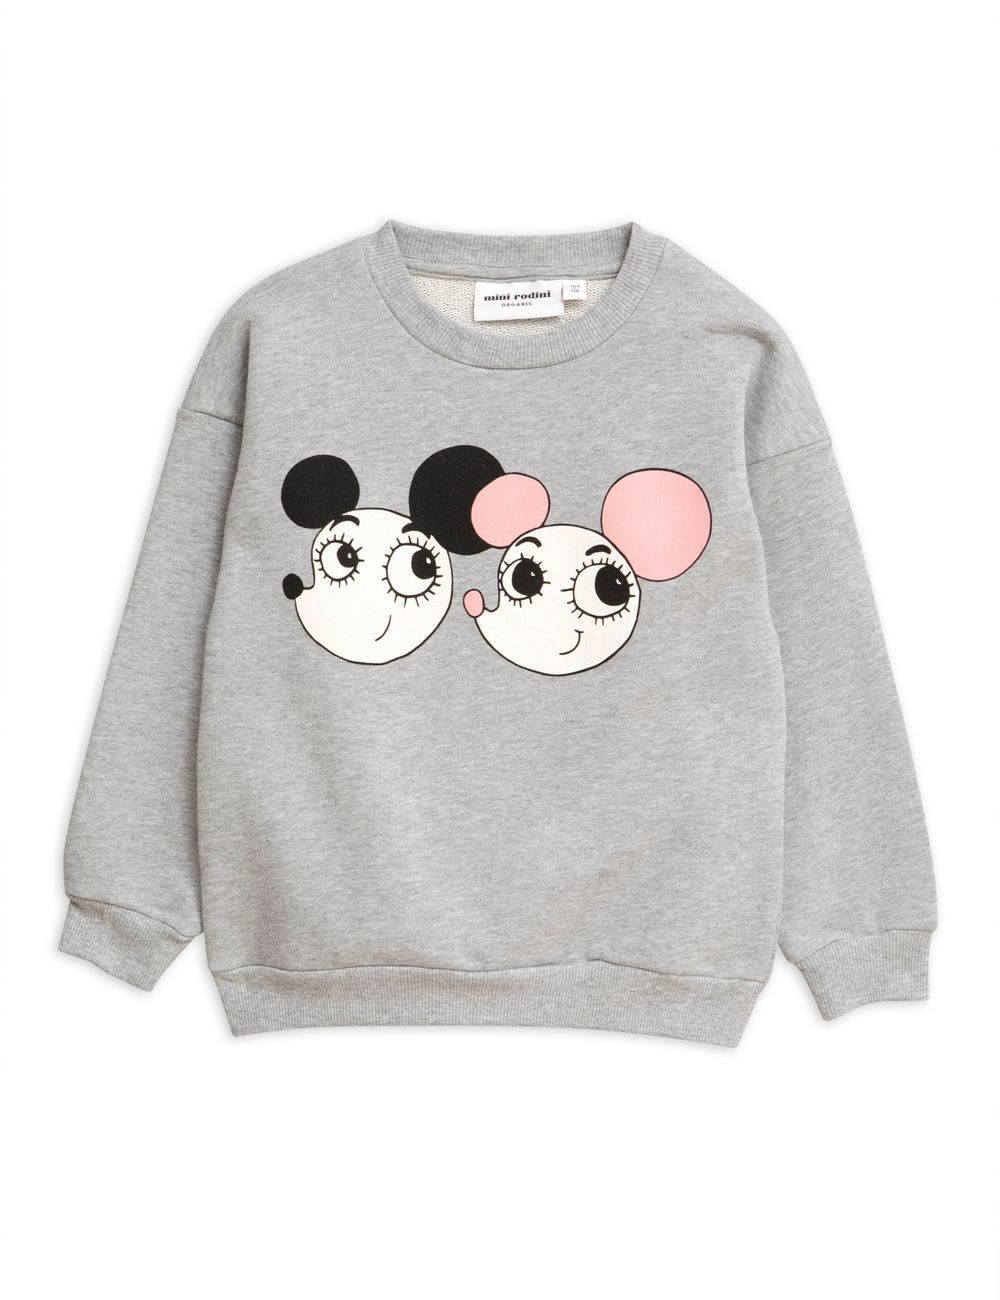 MINI RODINI RITZRATZ SP SWEATSHIRT, GREY MELANGE